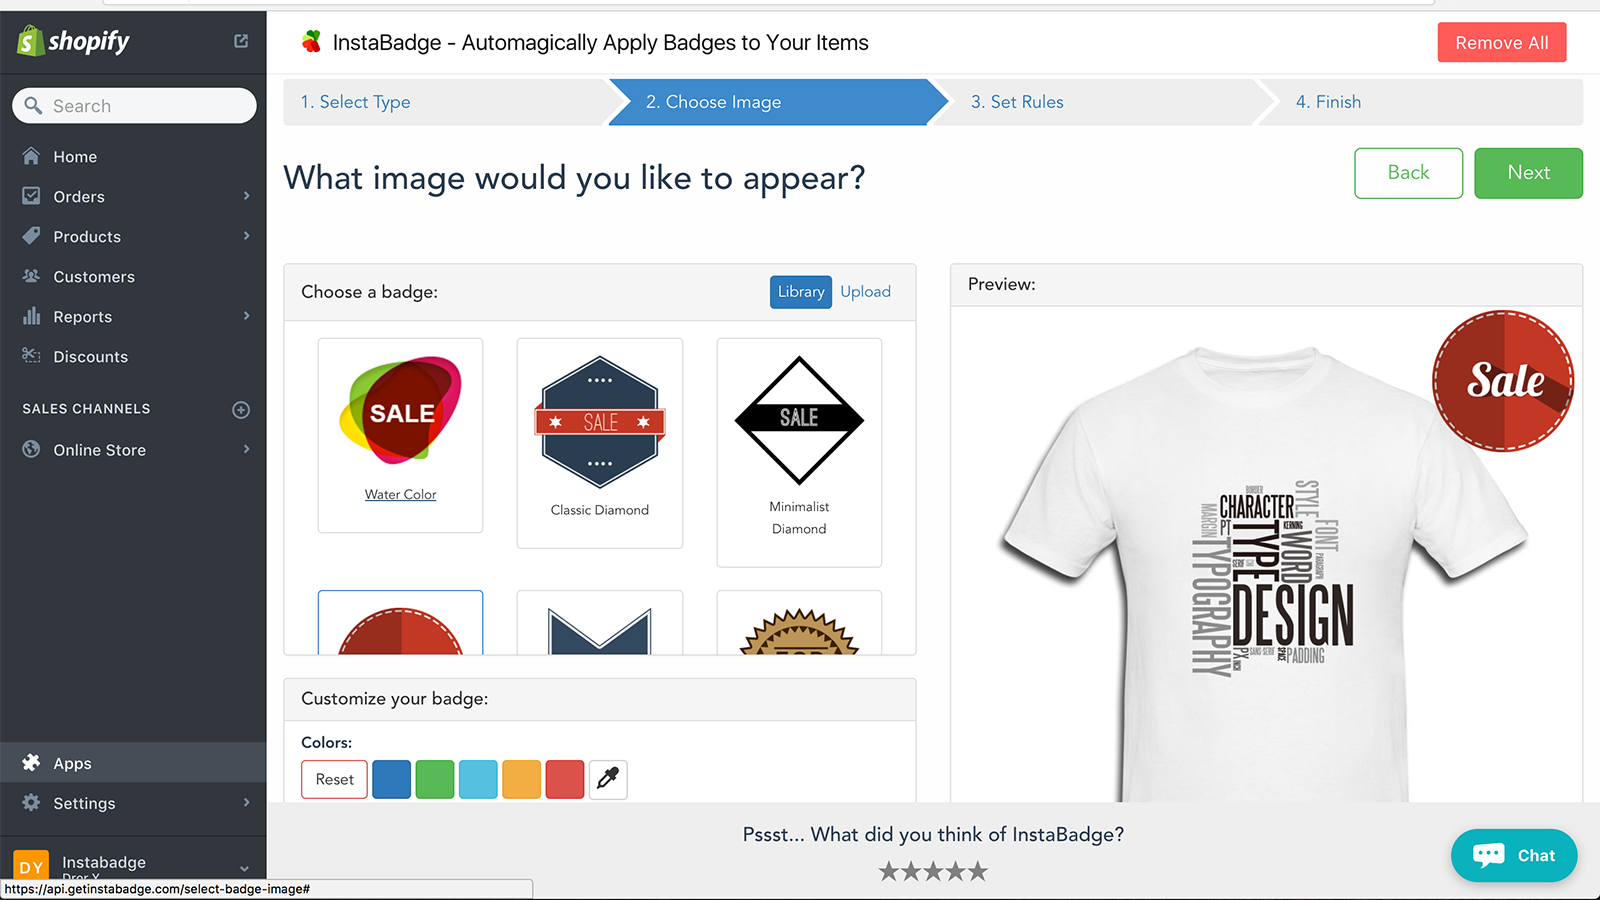 Dashboard - select your image